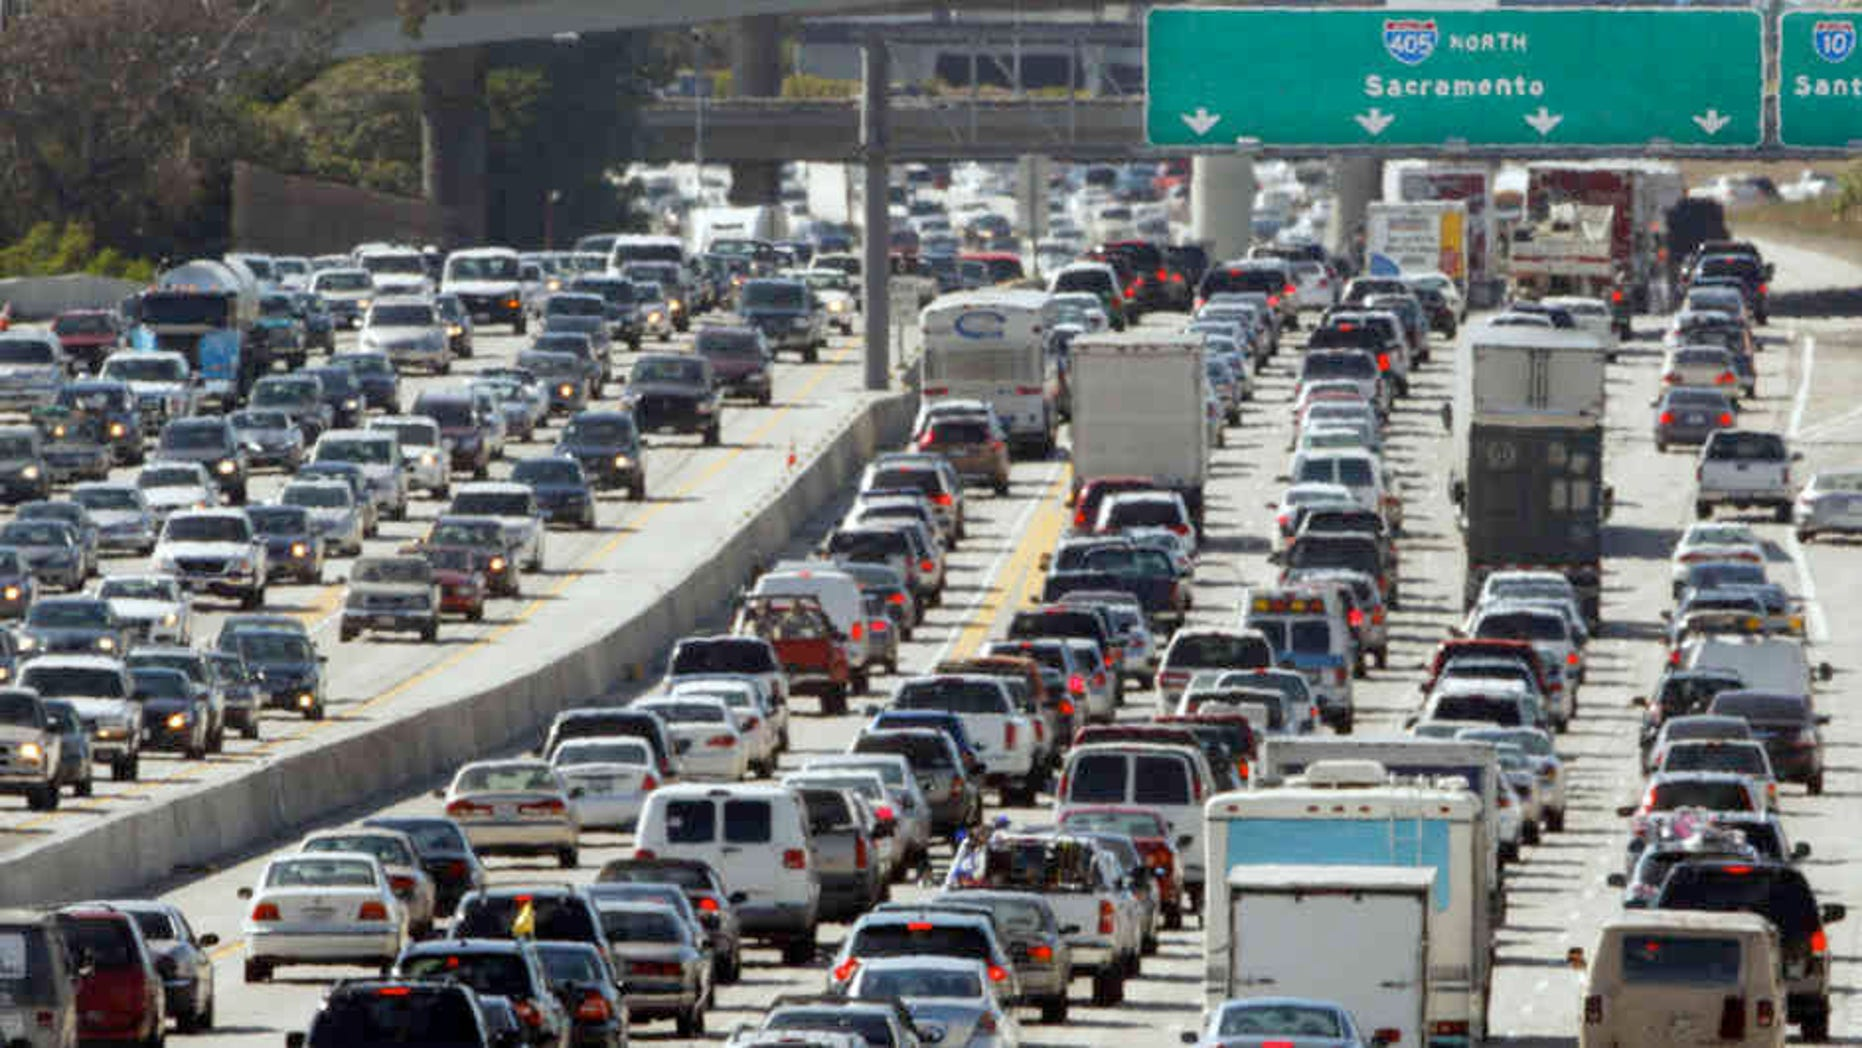 AAA says July 4th holiday weekend travel will grow almost 2 percent over last year.